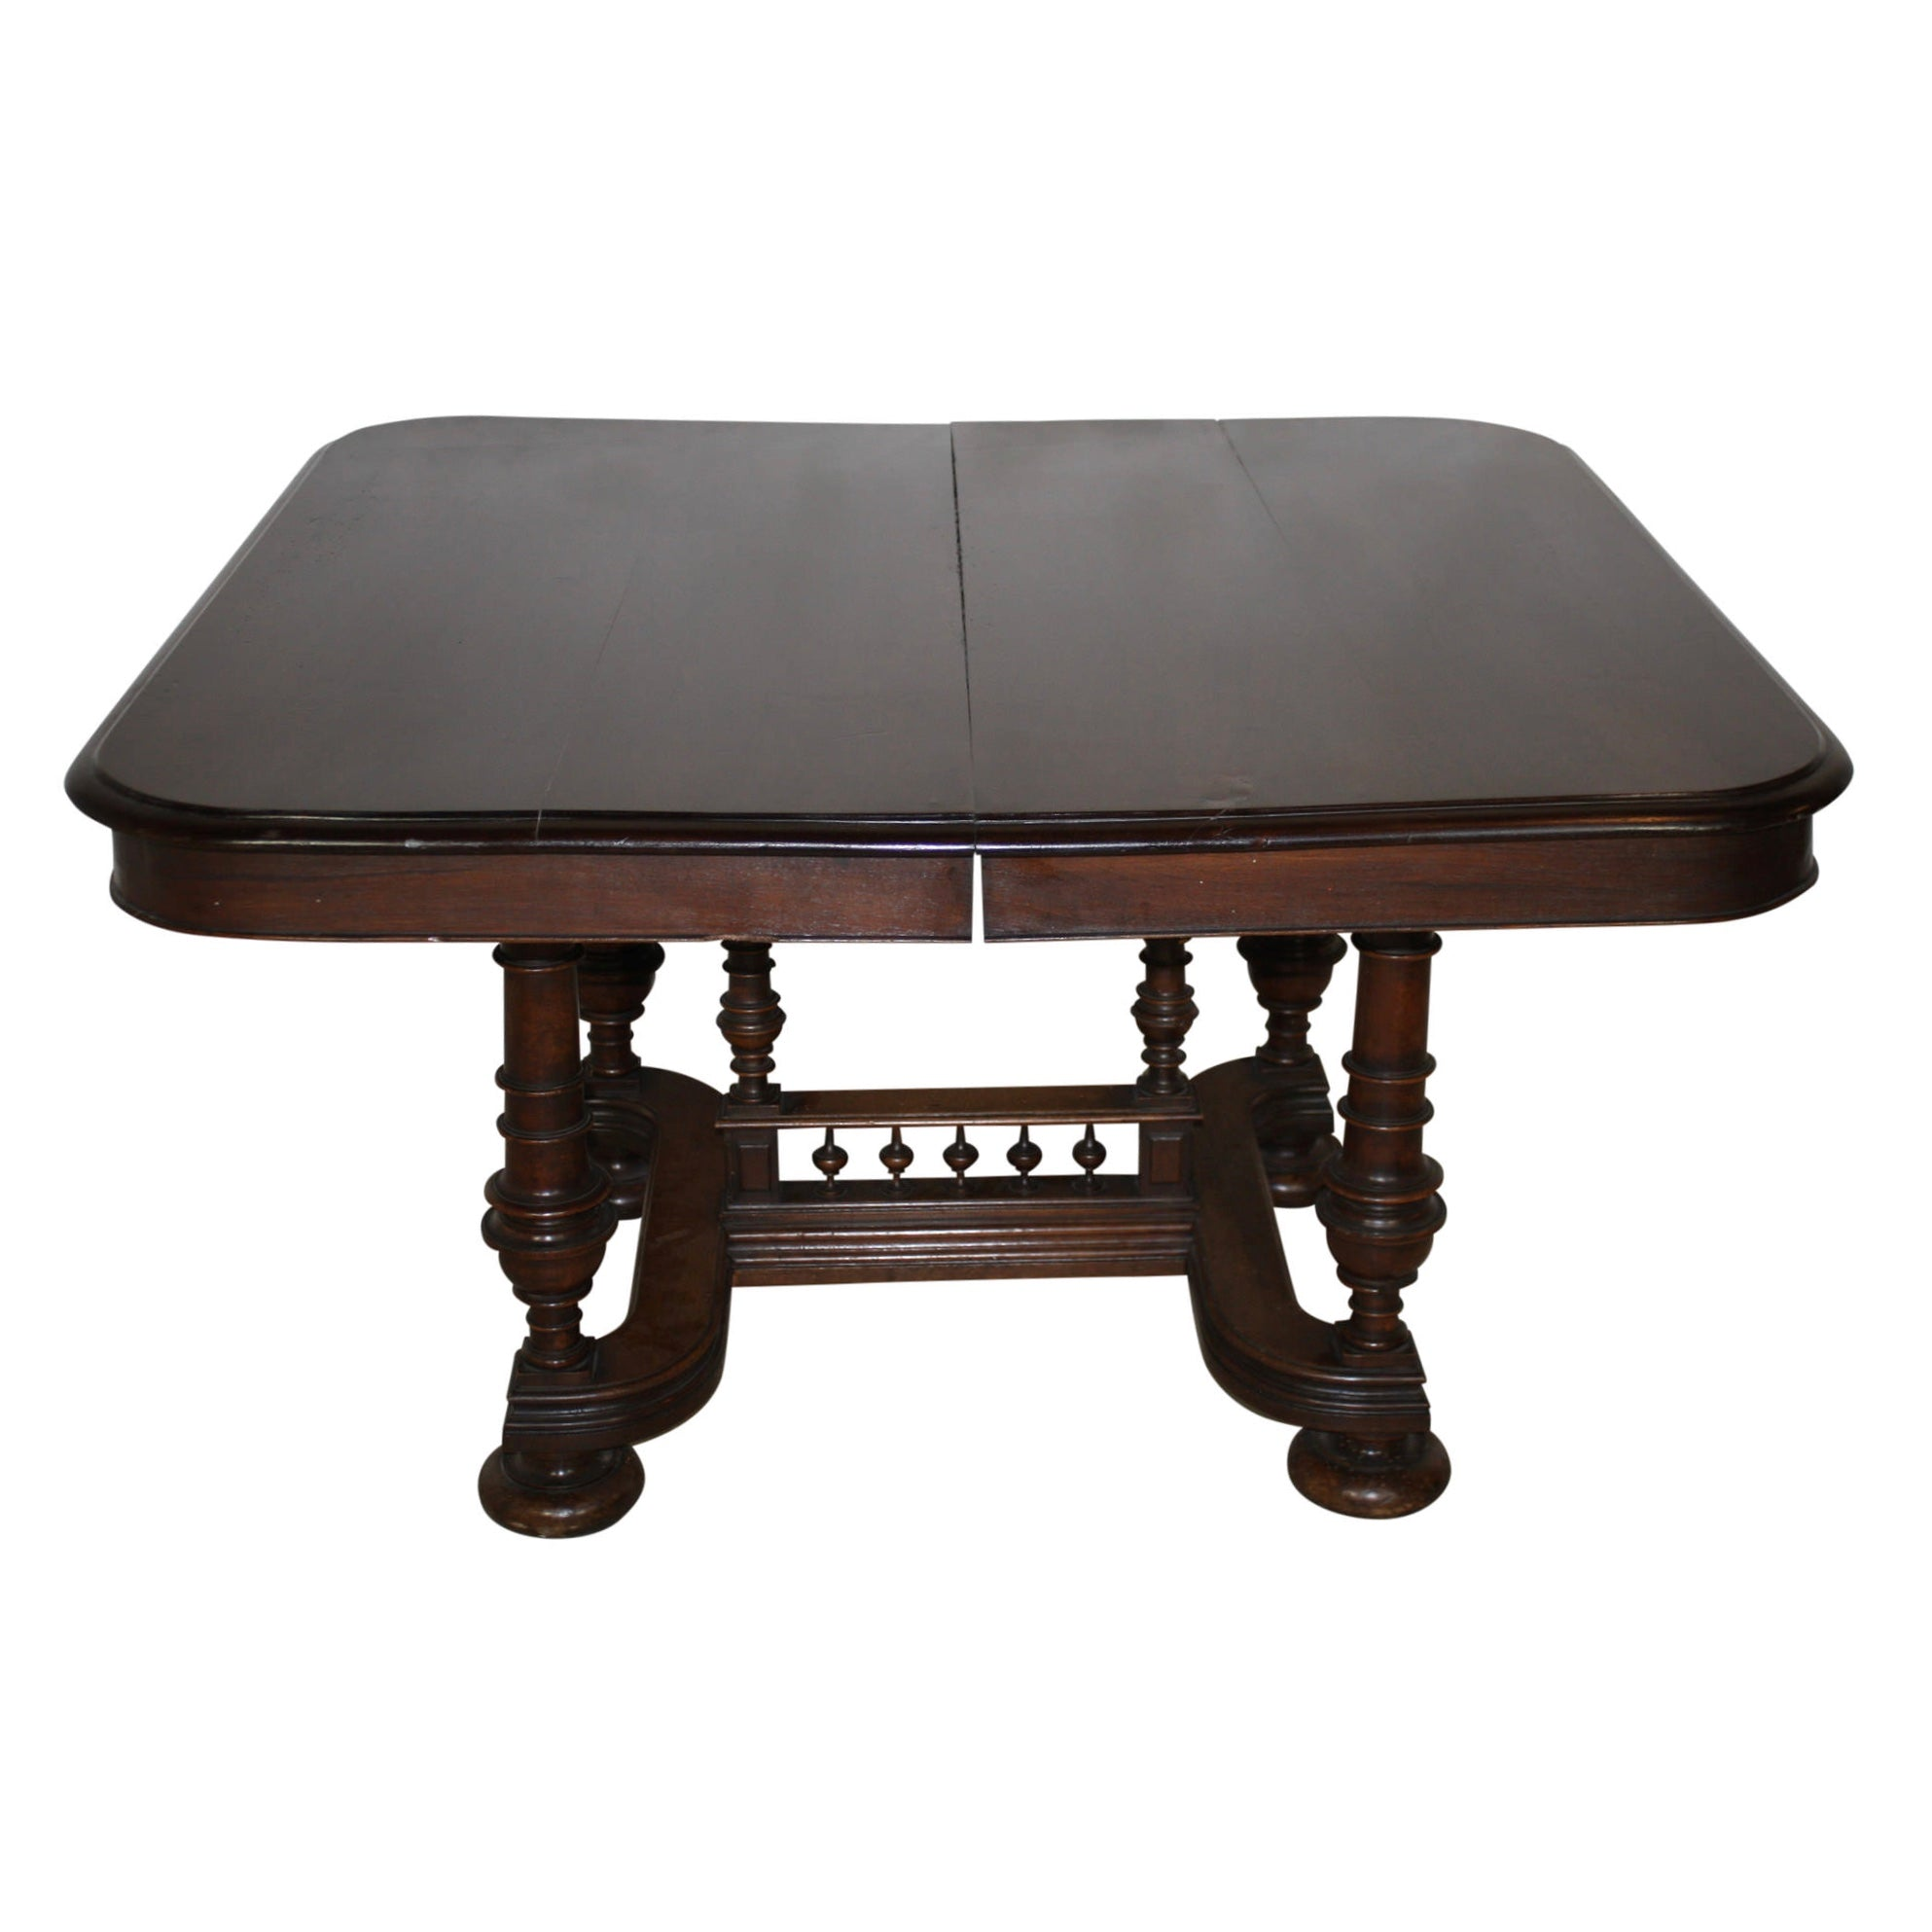 Henry II Walnut Table